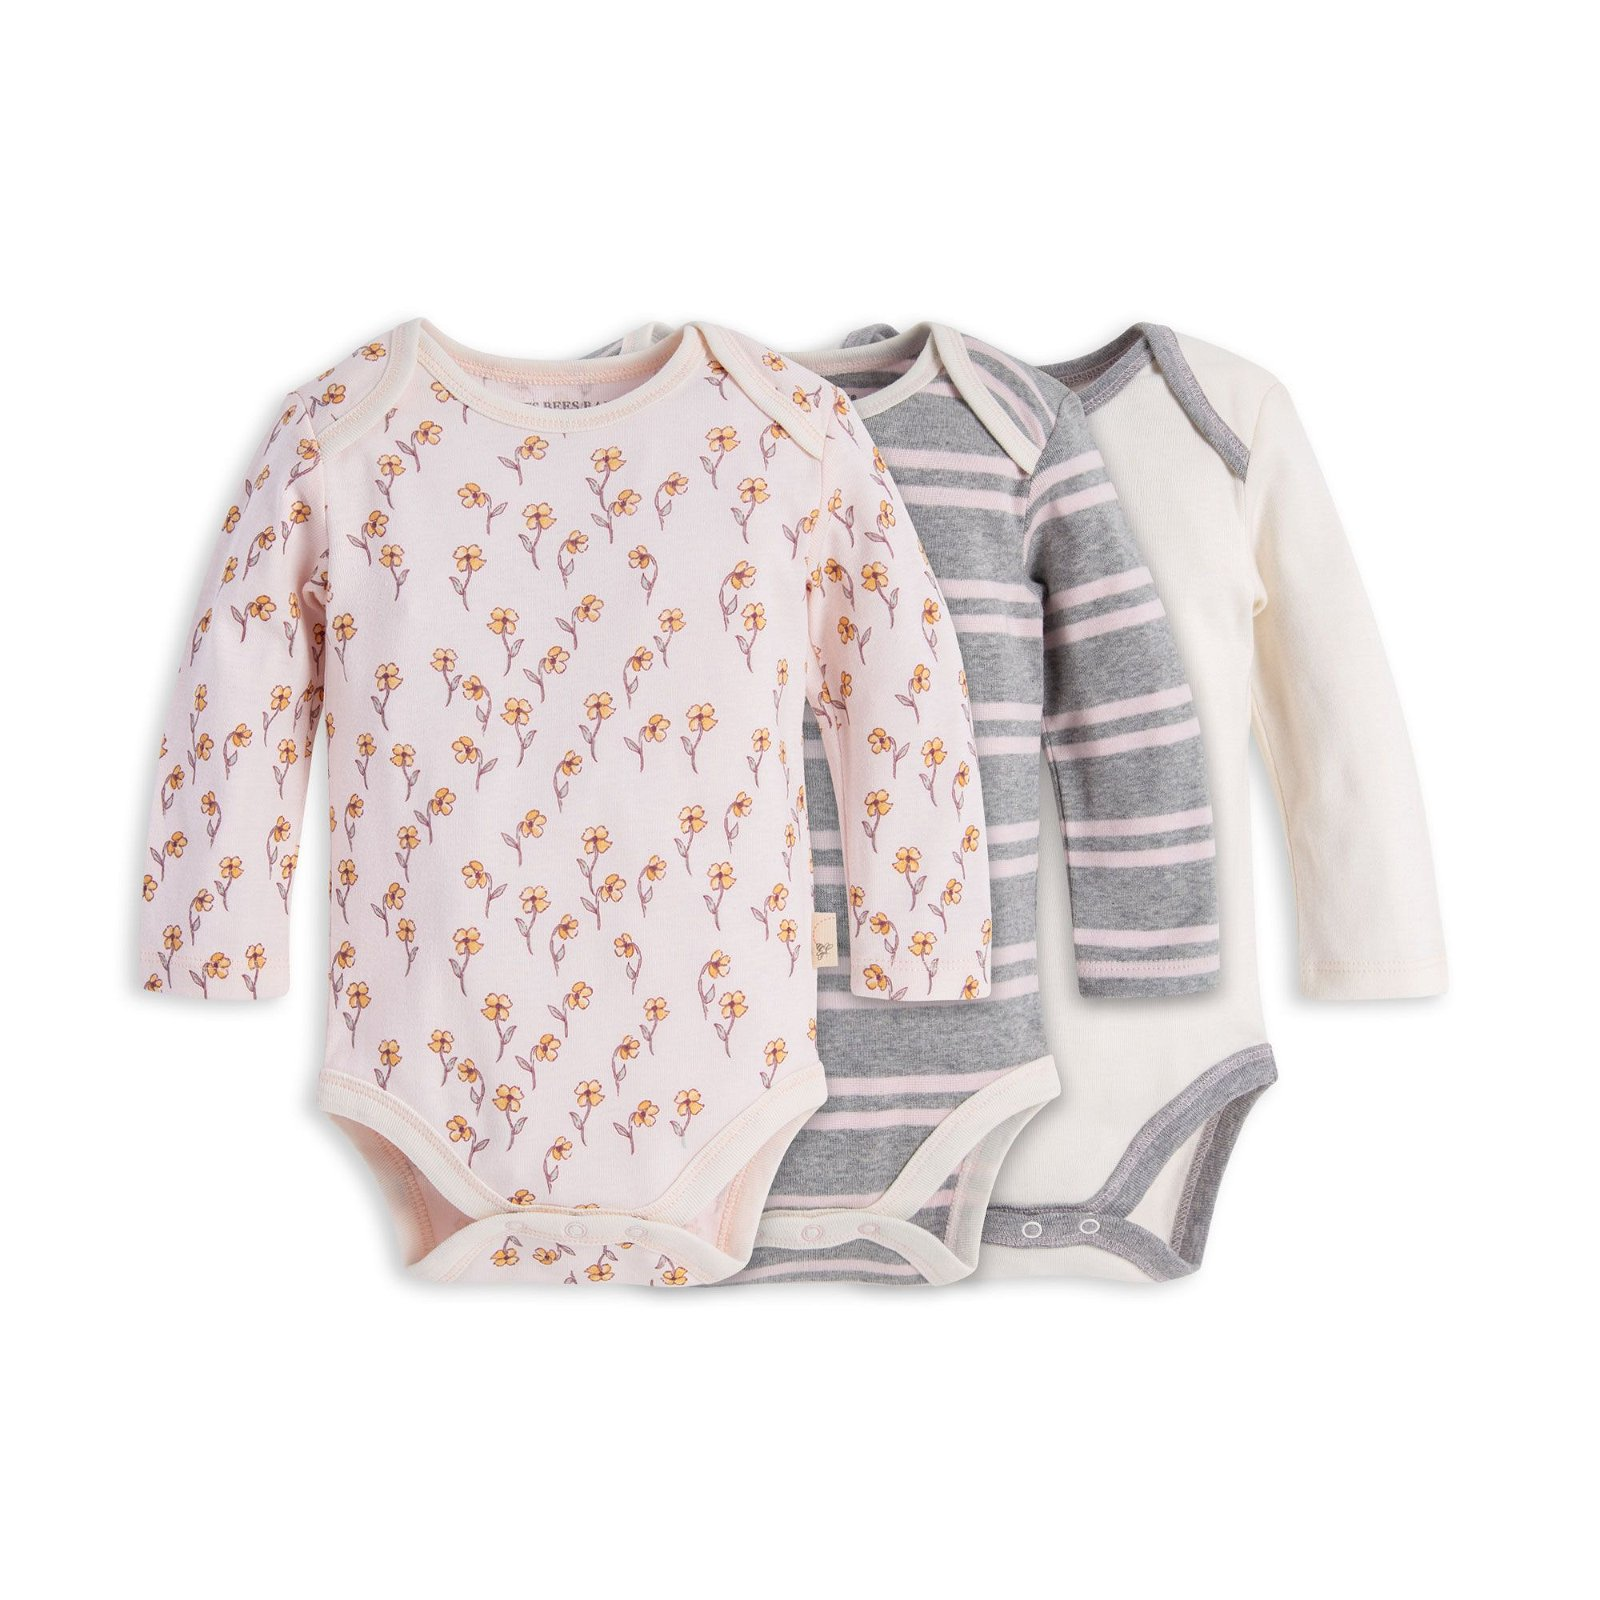 Organic Cotton 3 Pack Windy Floral Bodysuits